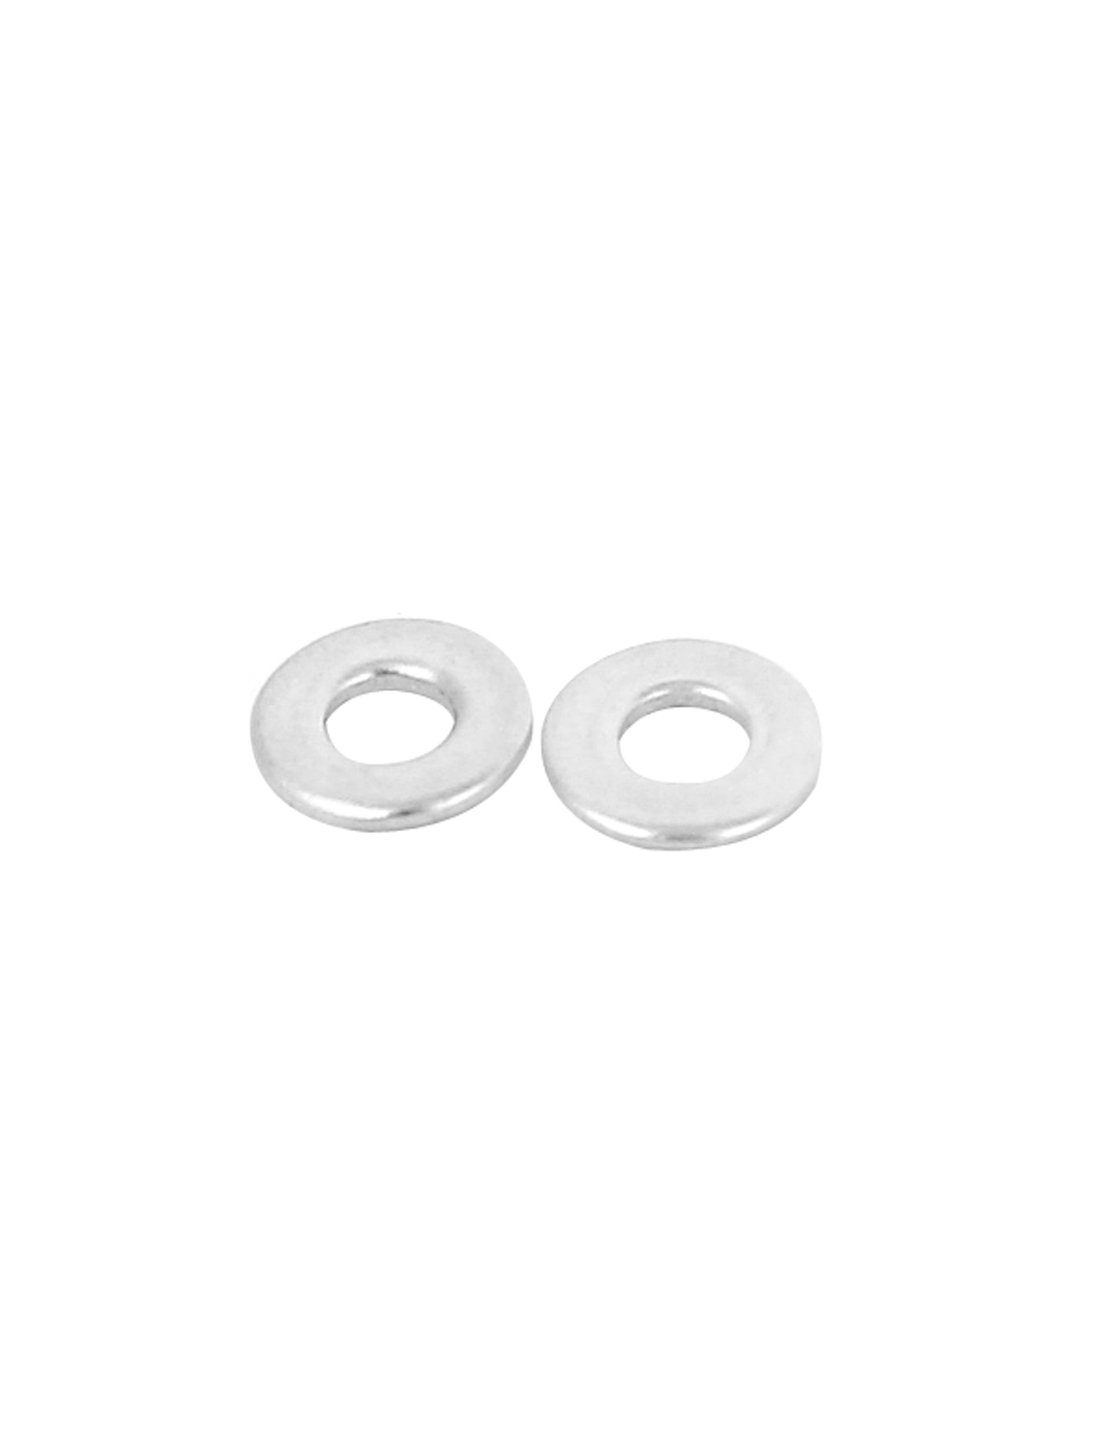 amazon m1 6 x 3mm stainless steel sealed flat washer for bolt Hex Nut Screwdriver amazon m1 6 x 3mm stainless steel sealed flat washer for bolt screw 100pcs home improvement